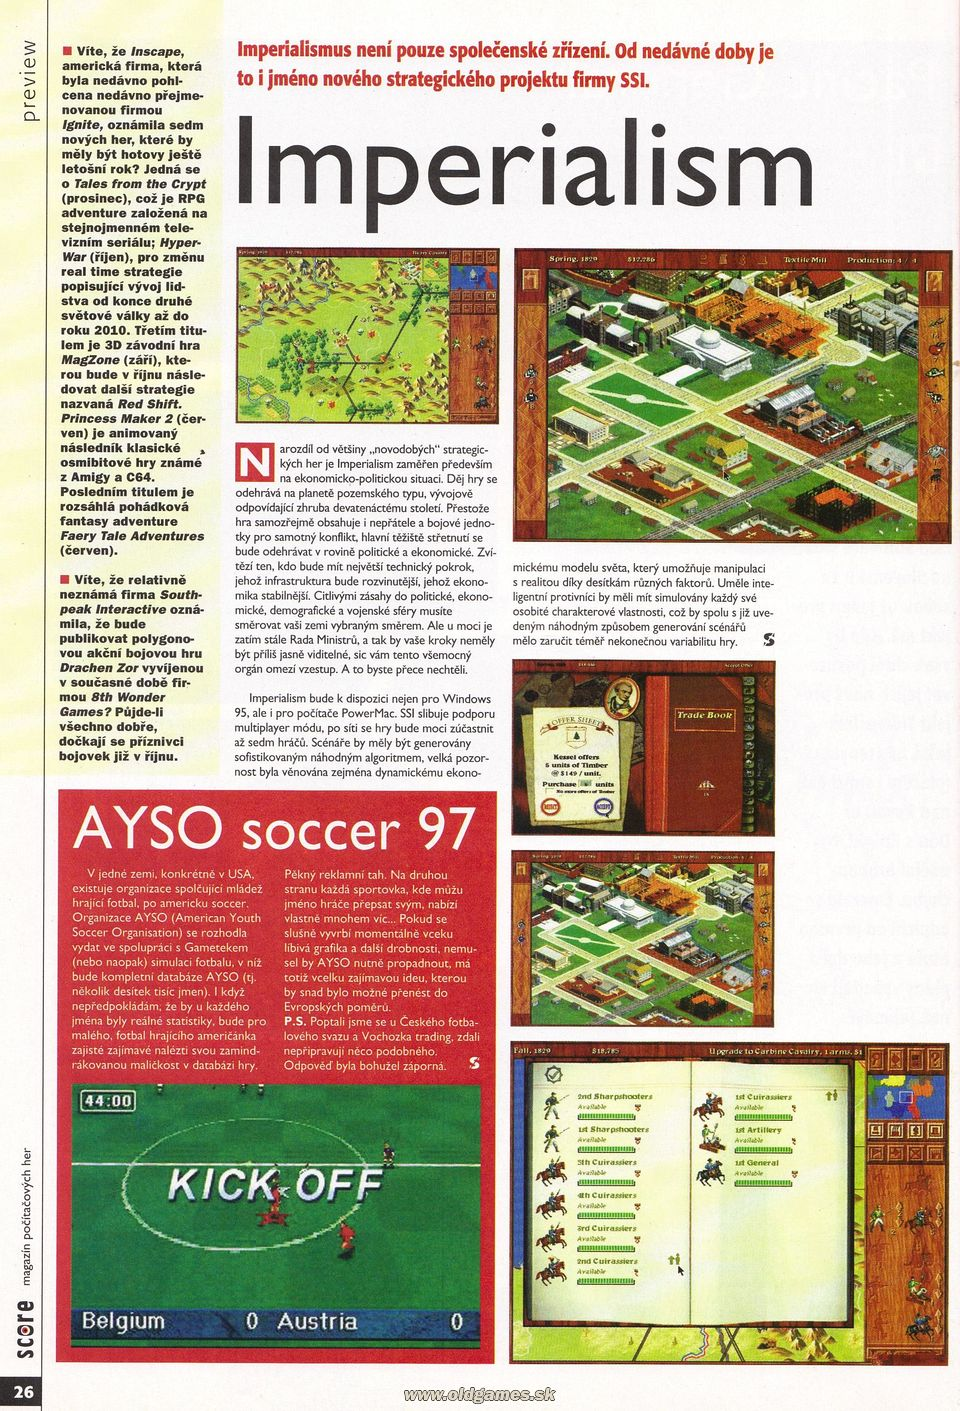 Preview: Imperialism, AYSO soccer 97